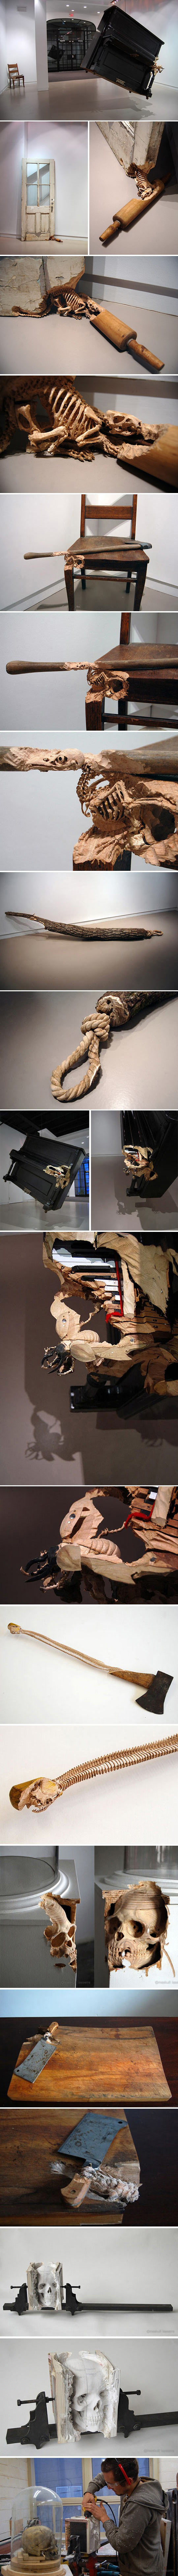 Spectacular Sculptural Wood Carving Work